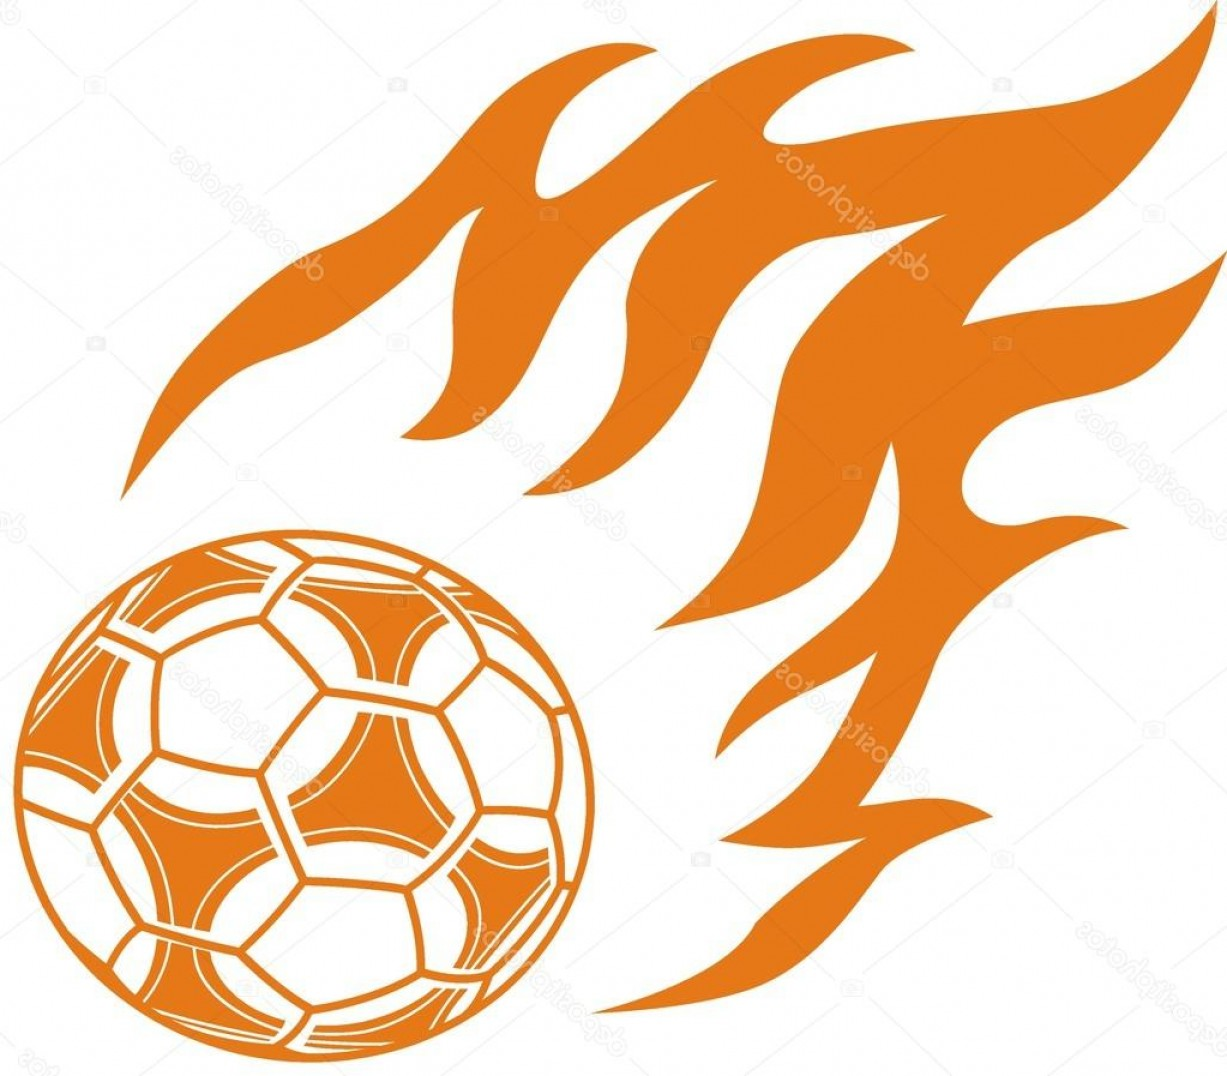 Tribal Football Vector Art: Stock Illustration Football With Flame On Tribal